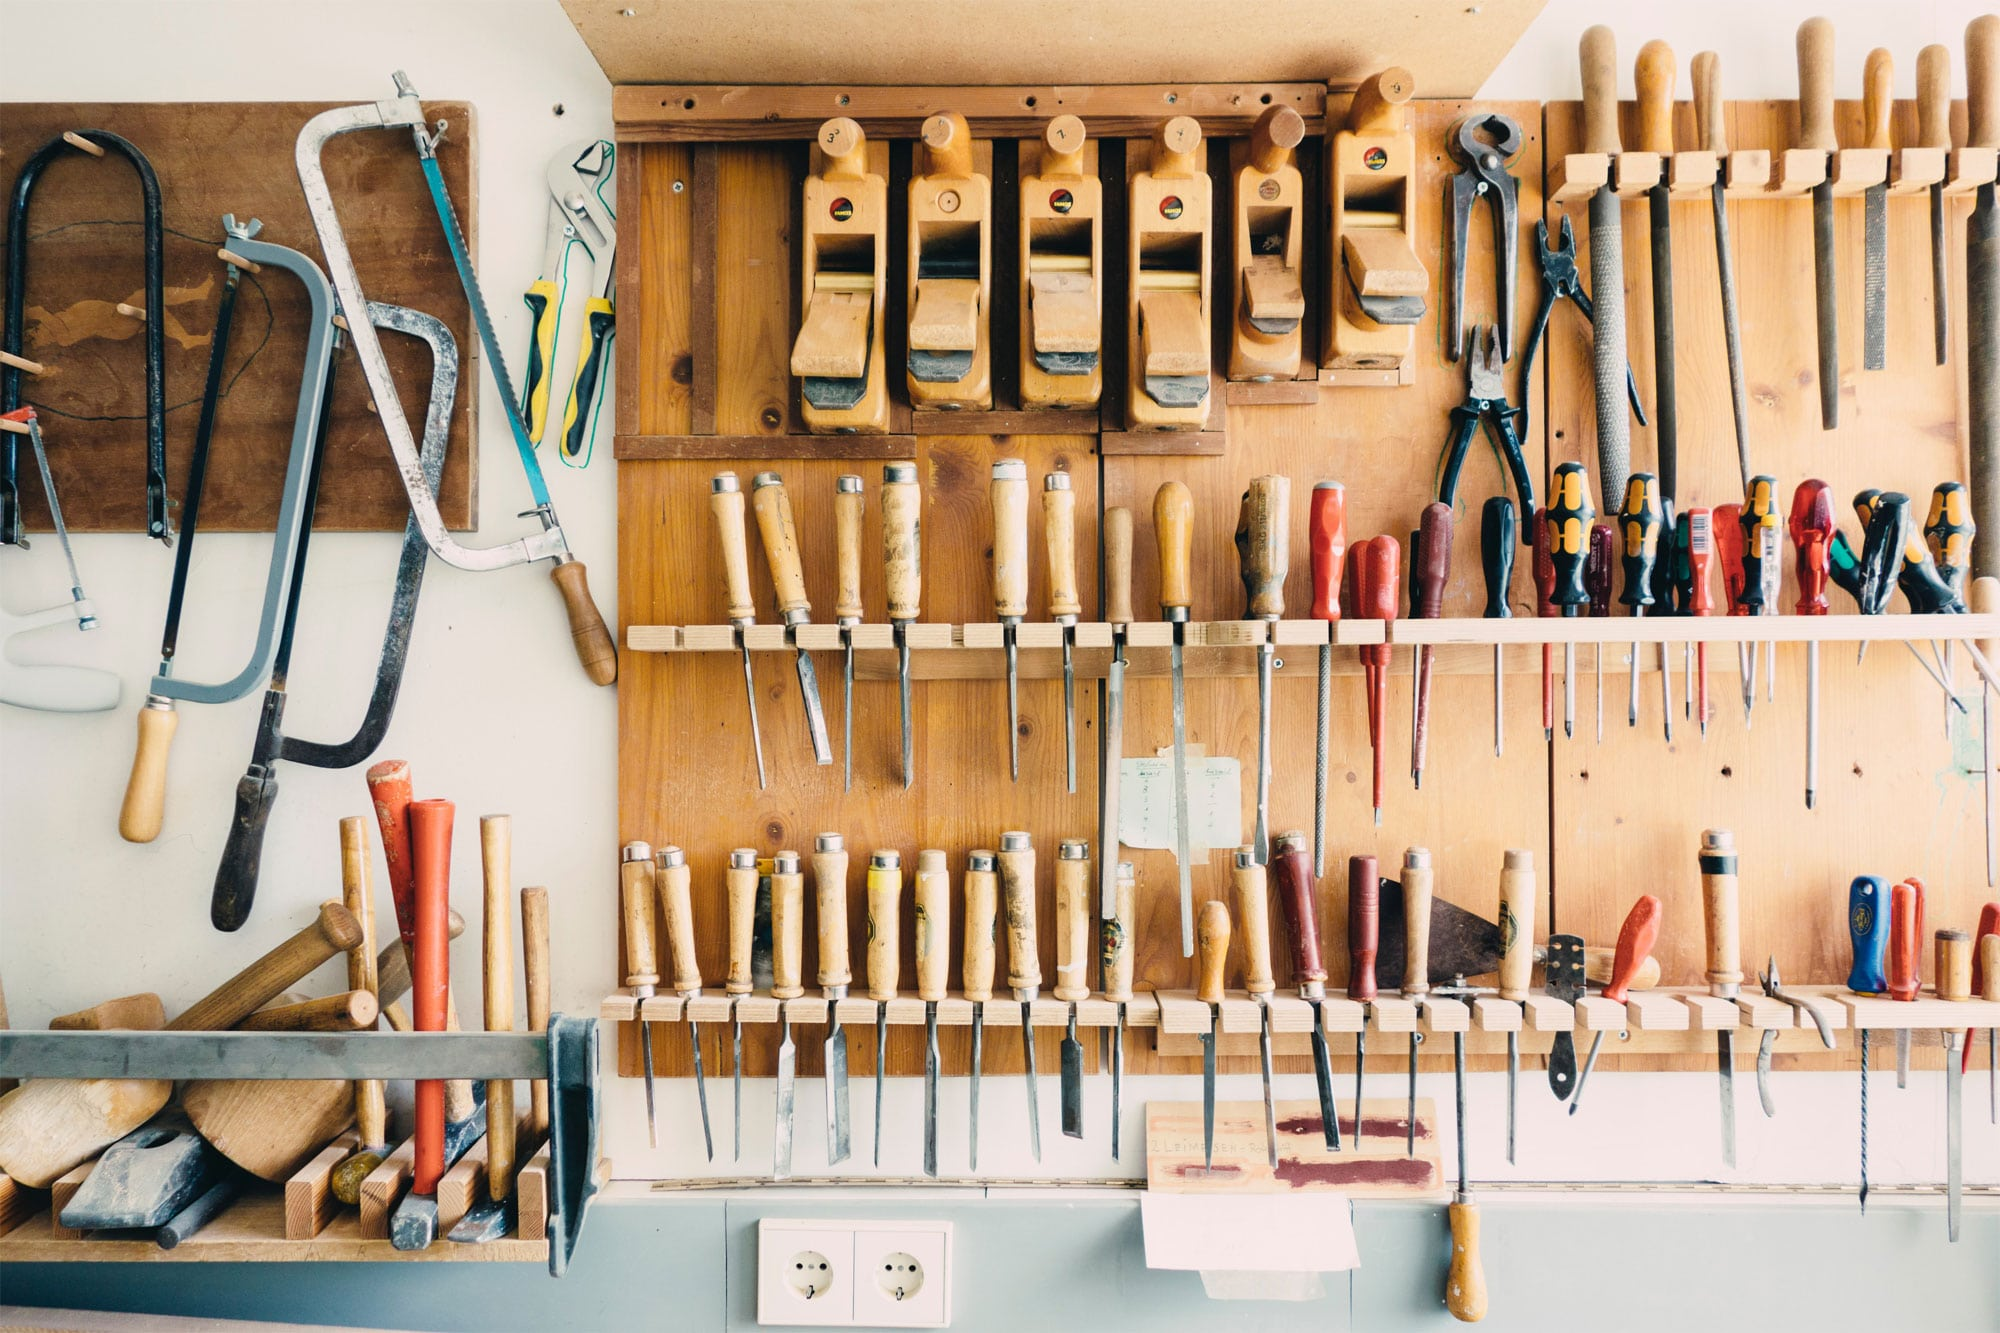 A wall of garage tools to symbolism the many web design tools to choose from